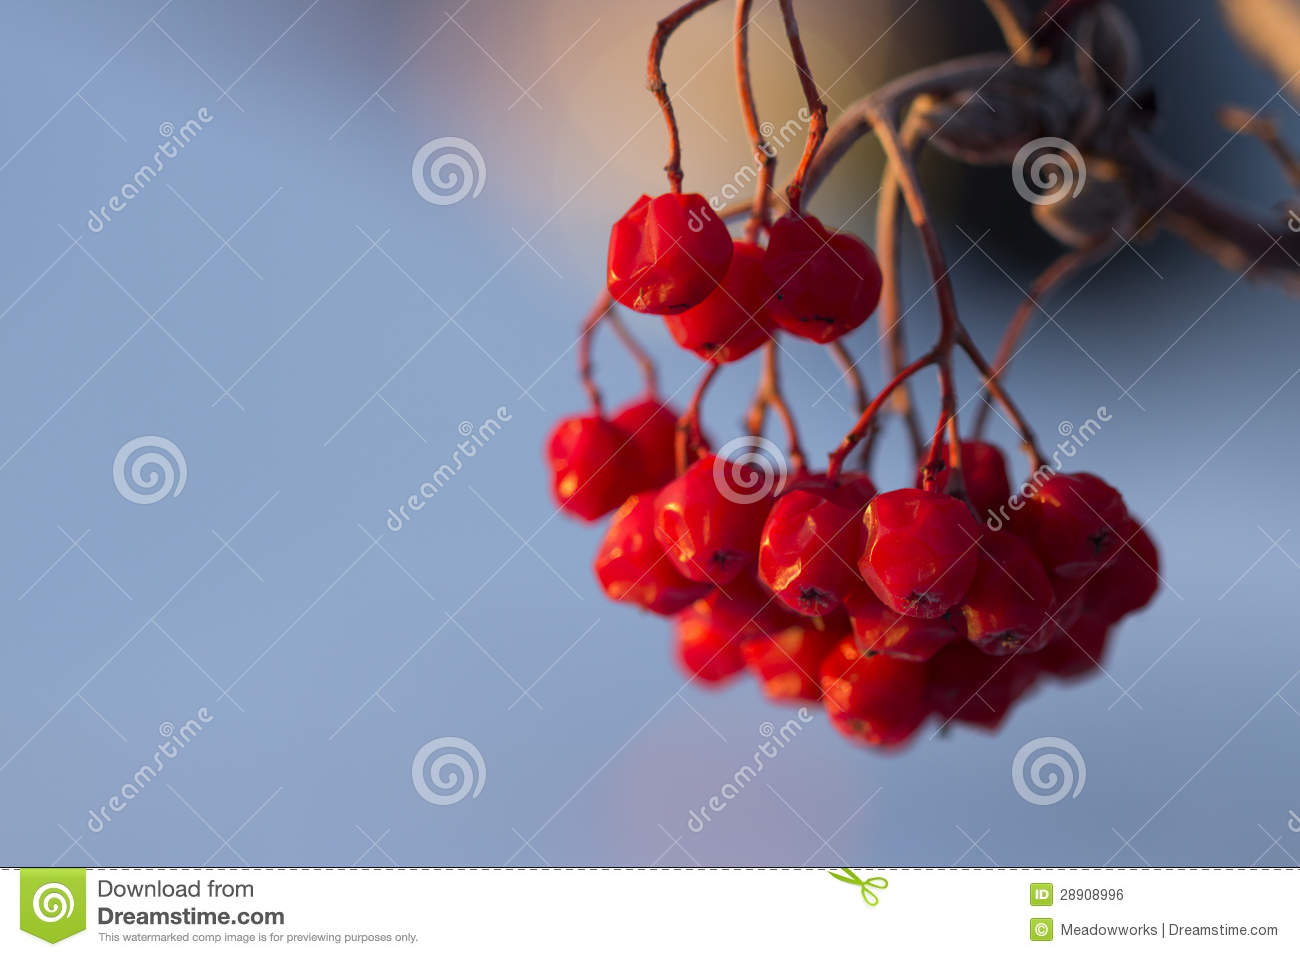 Winter Berries Royalty Free Stock Image   Image  28908996